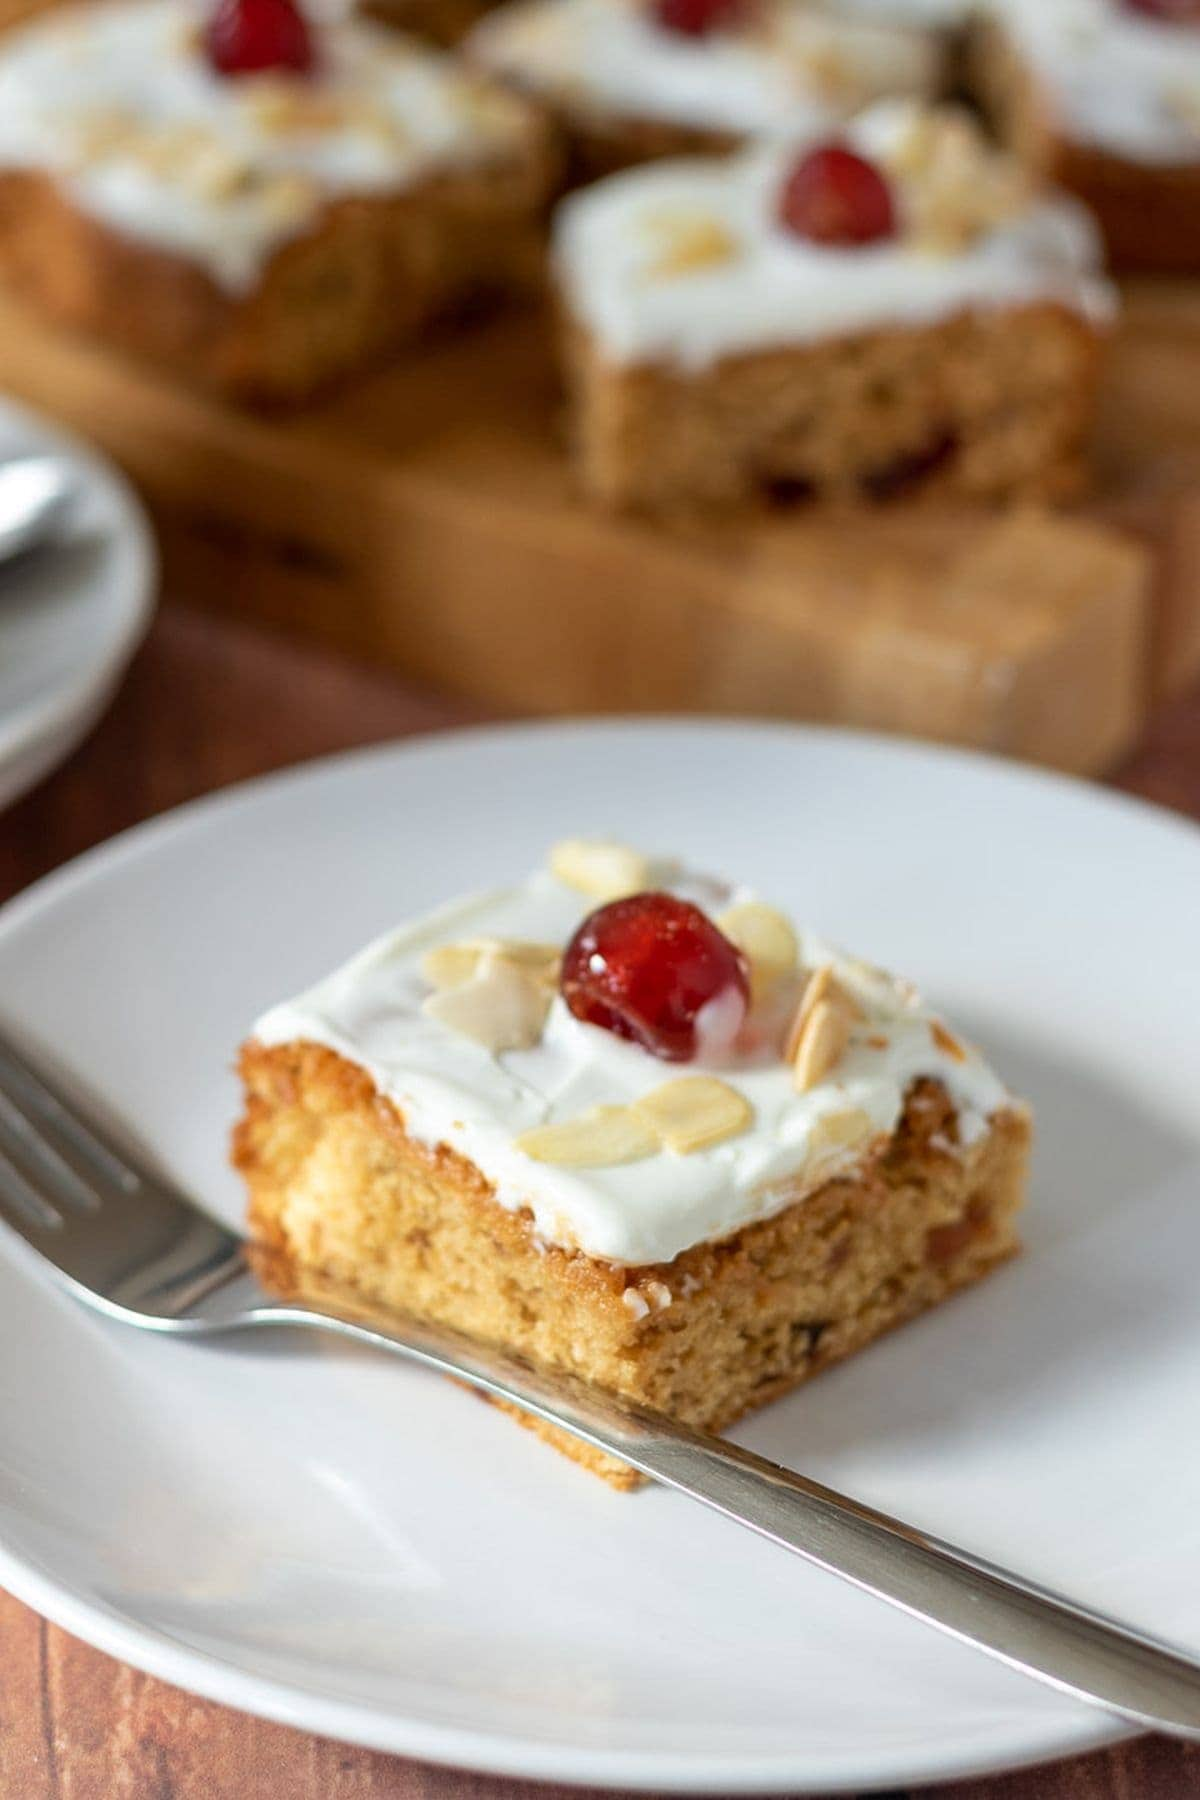 A slice of cherry Bakewell tray bake served on a white plate with a fork to the side. Chopping board with the rest of the tray bake squares on in the background.